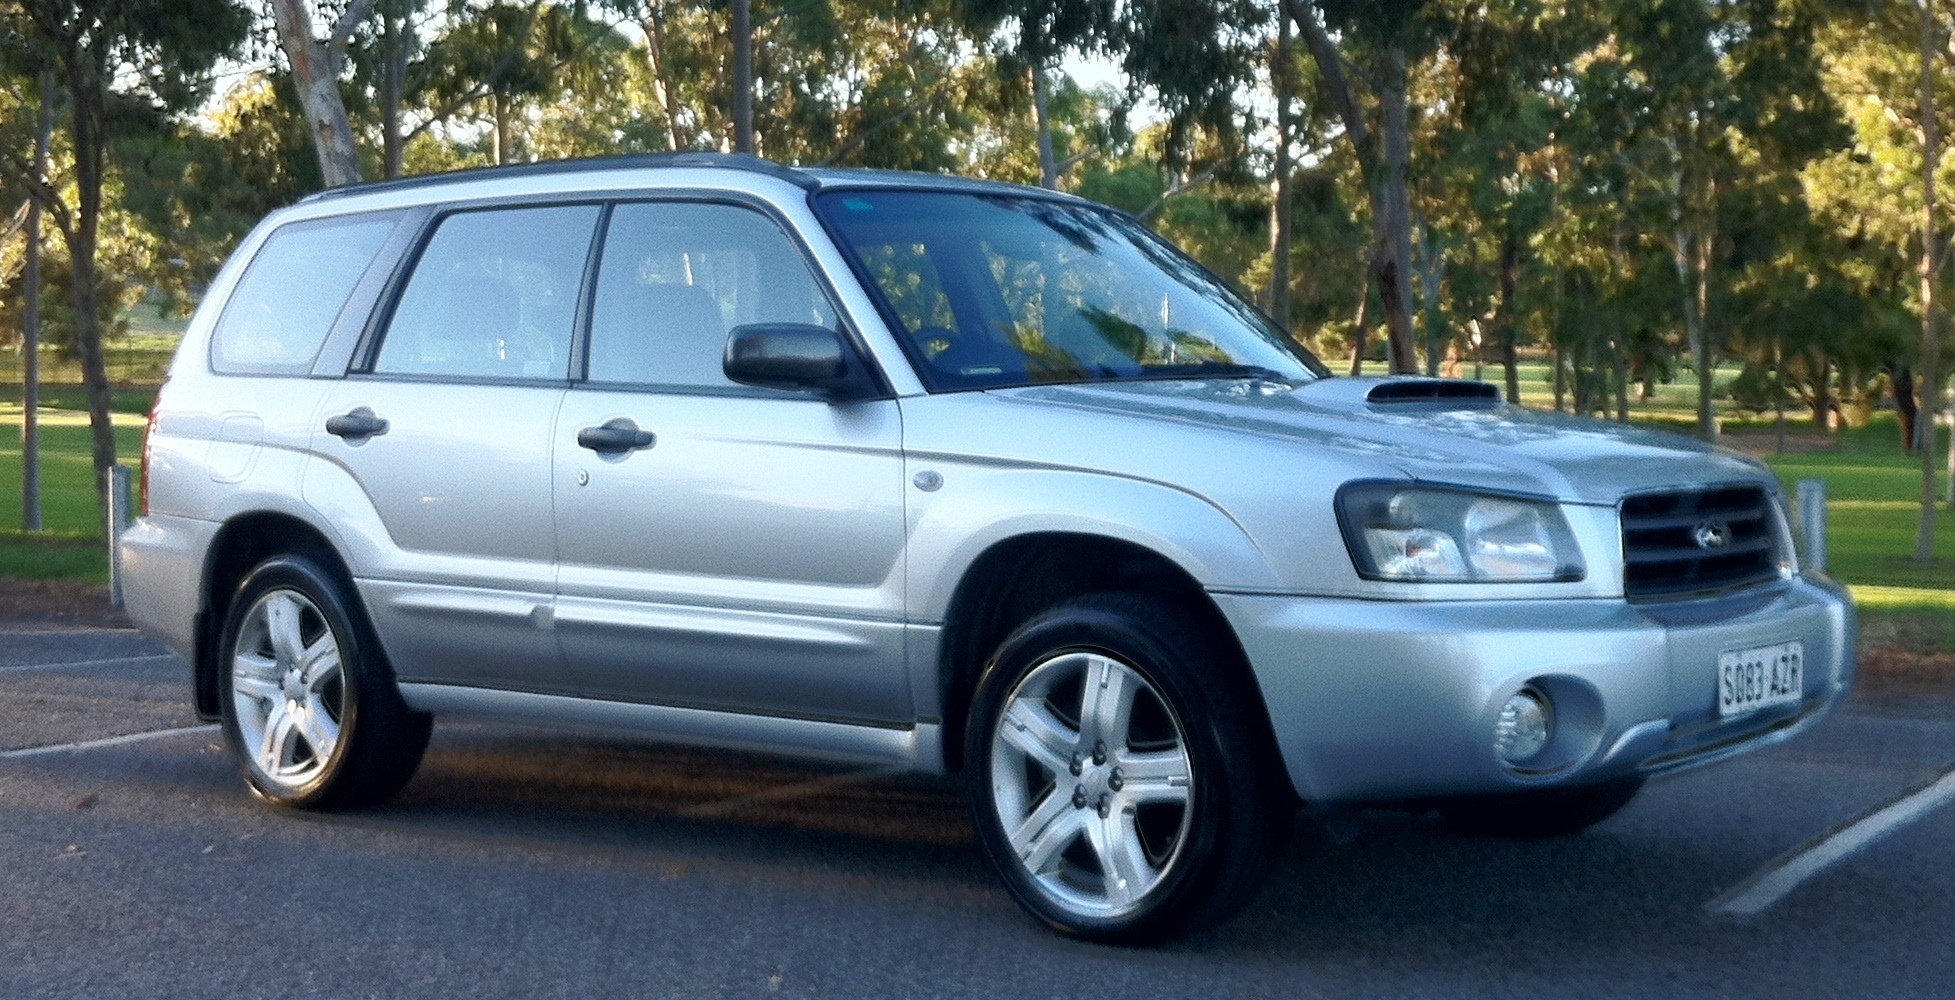 2005 subaru forester xt luxury my06 car sales sa adelaide north east. Black Bedroom Furniture Sets. Home Design Ideas